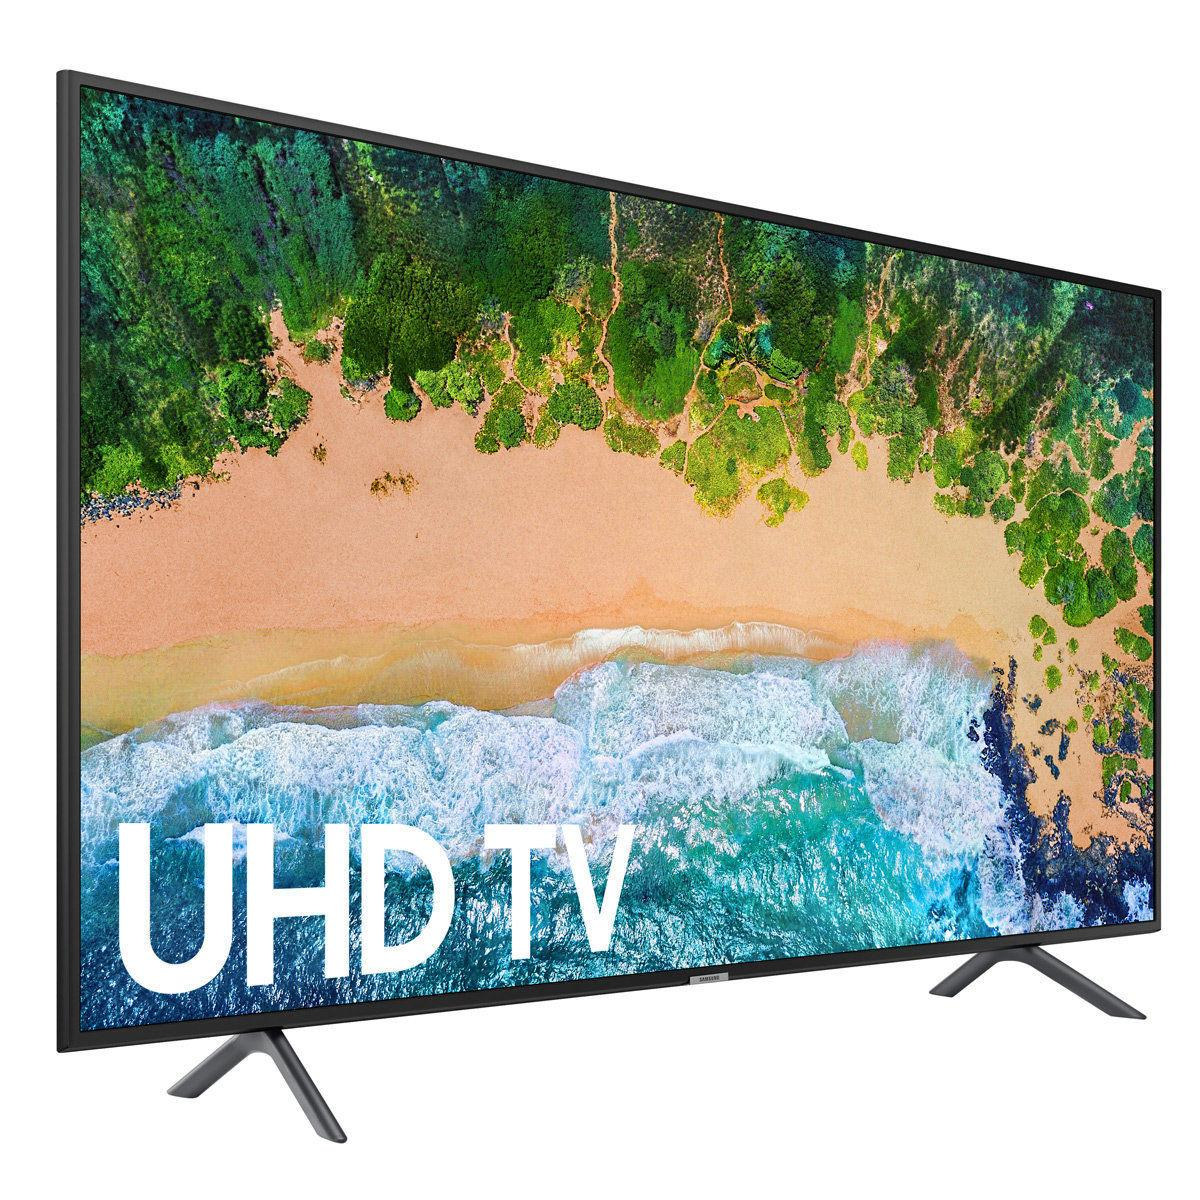 Beli Sekarang Ichiko Tv Led 65inch Ultra Hd 4k Curve Basic Model Hot Deals Samsung 32fh4003 Hitam 32 Inch Uhd Smart Type65nu7100 Khusus Daerah Medan